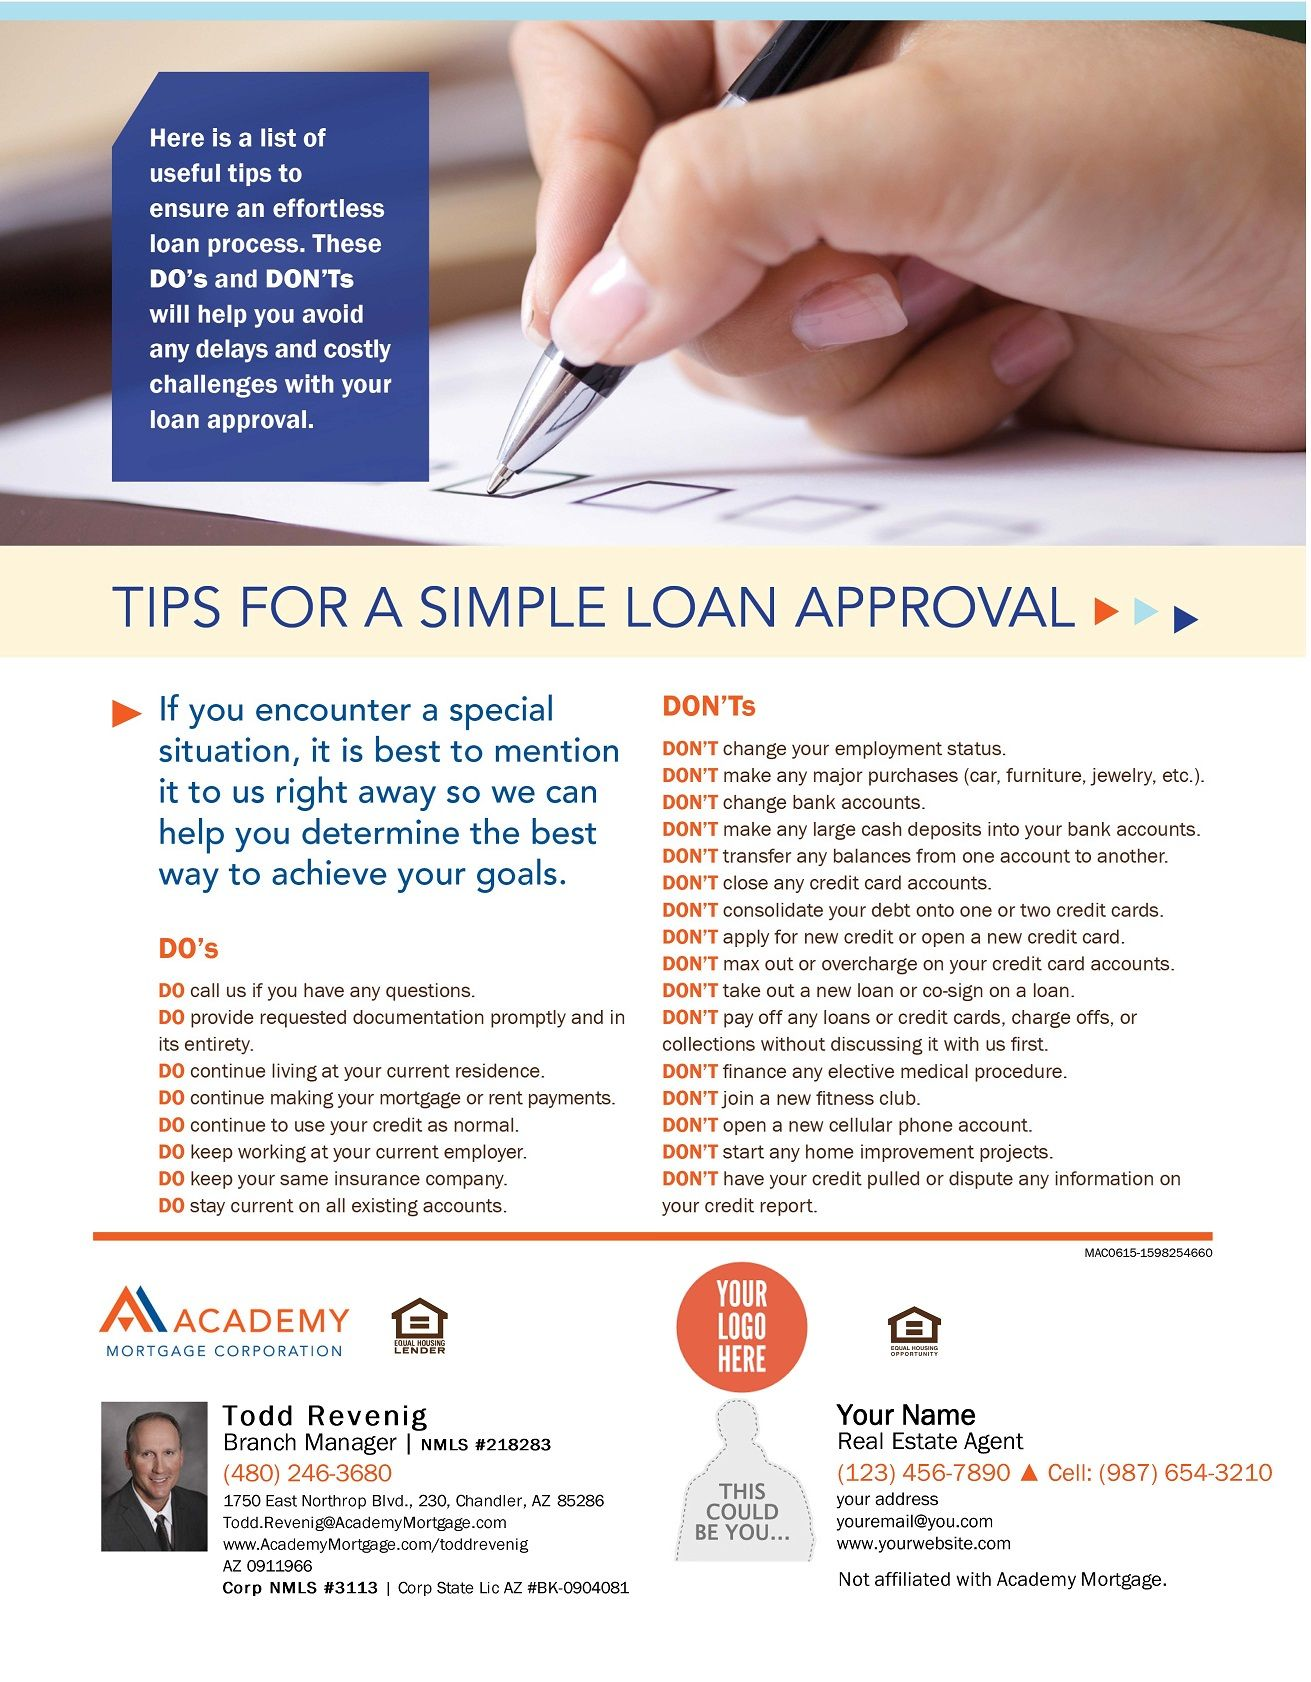 Tips For A Simple Loan Approval Co Branded Helpful Hints Real Estate Information How To Apply